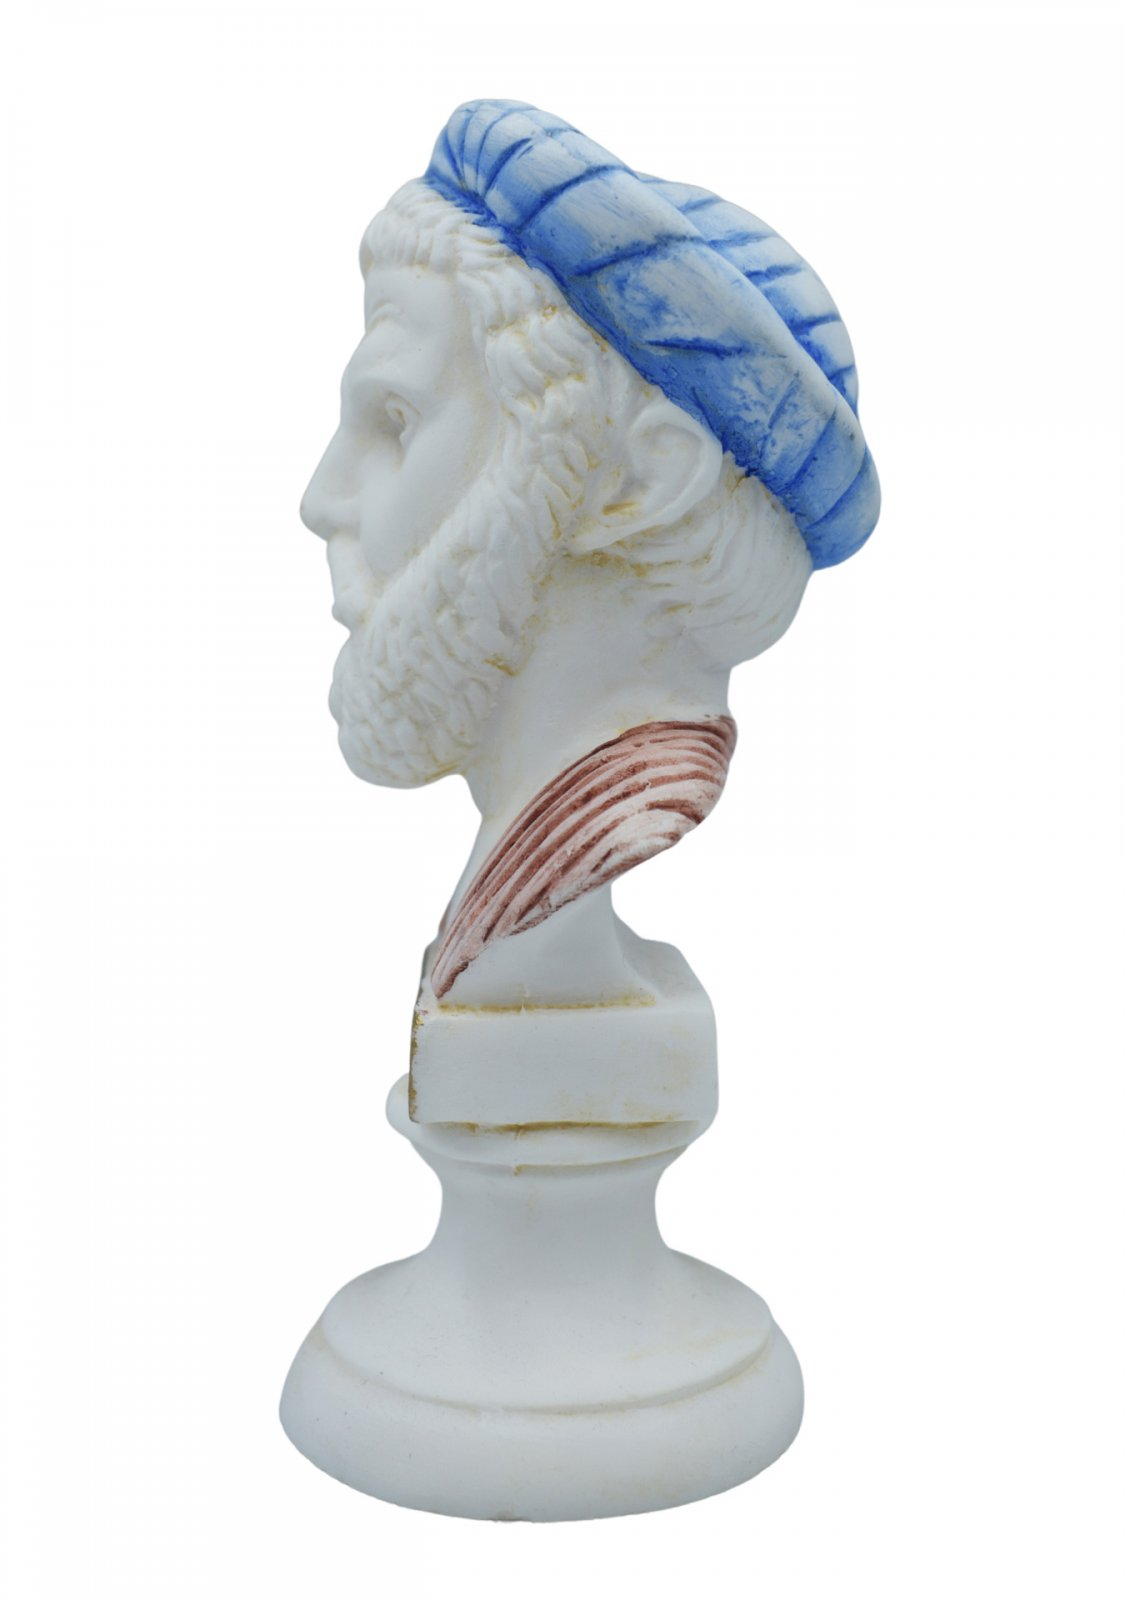 Pythagoras alabaster bust statue with color and patina